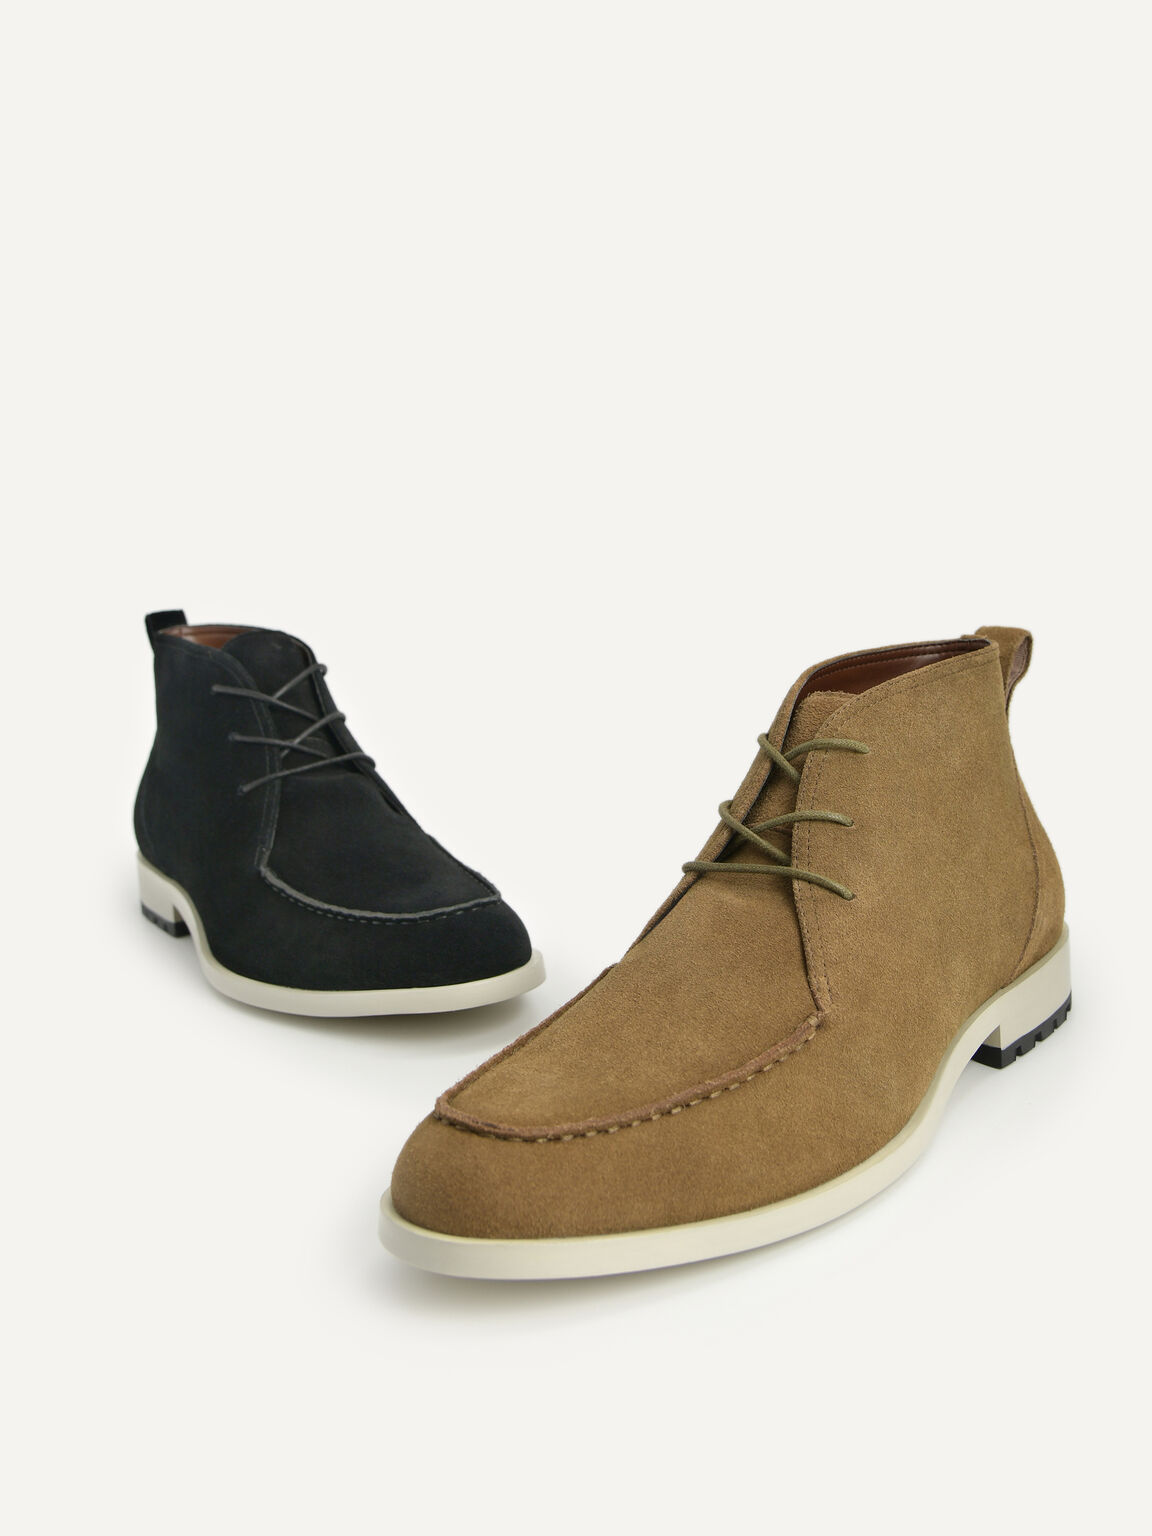 Suede Leather Boots, Olive, hi-res